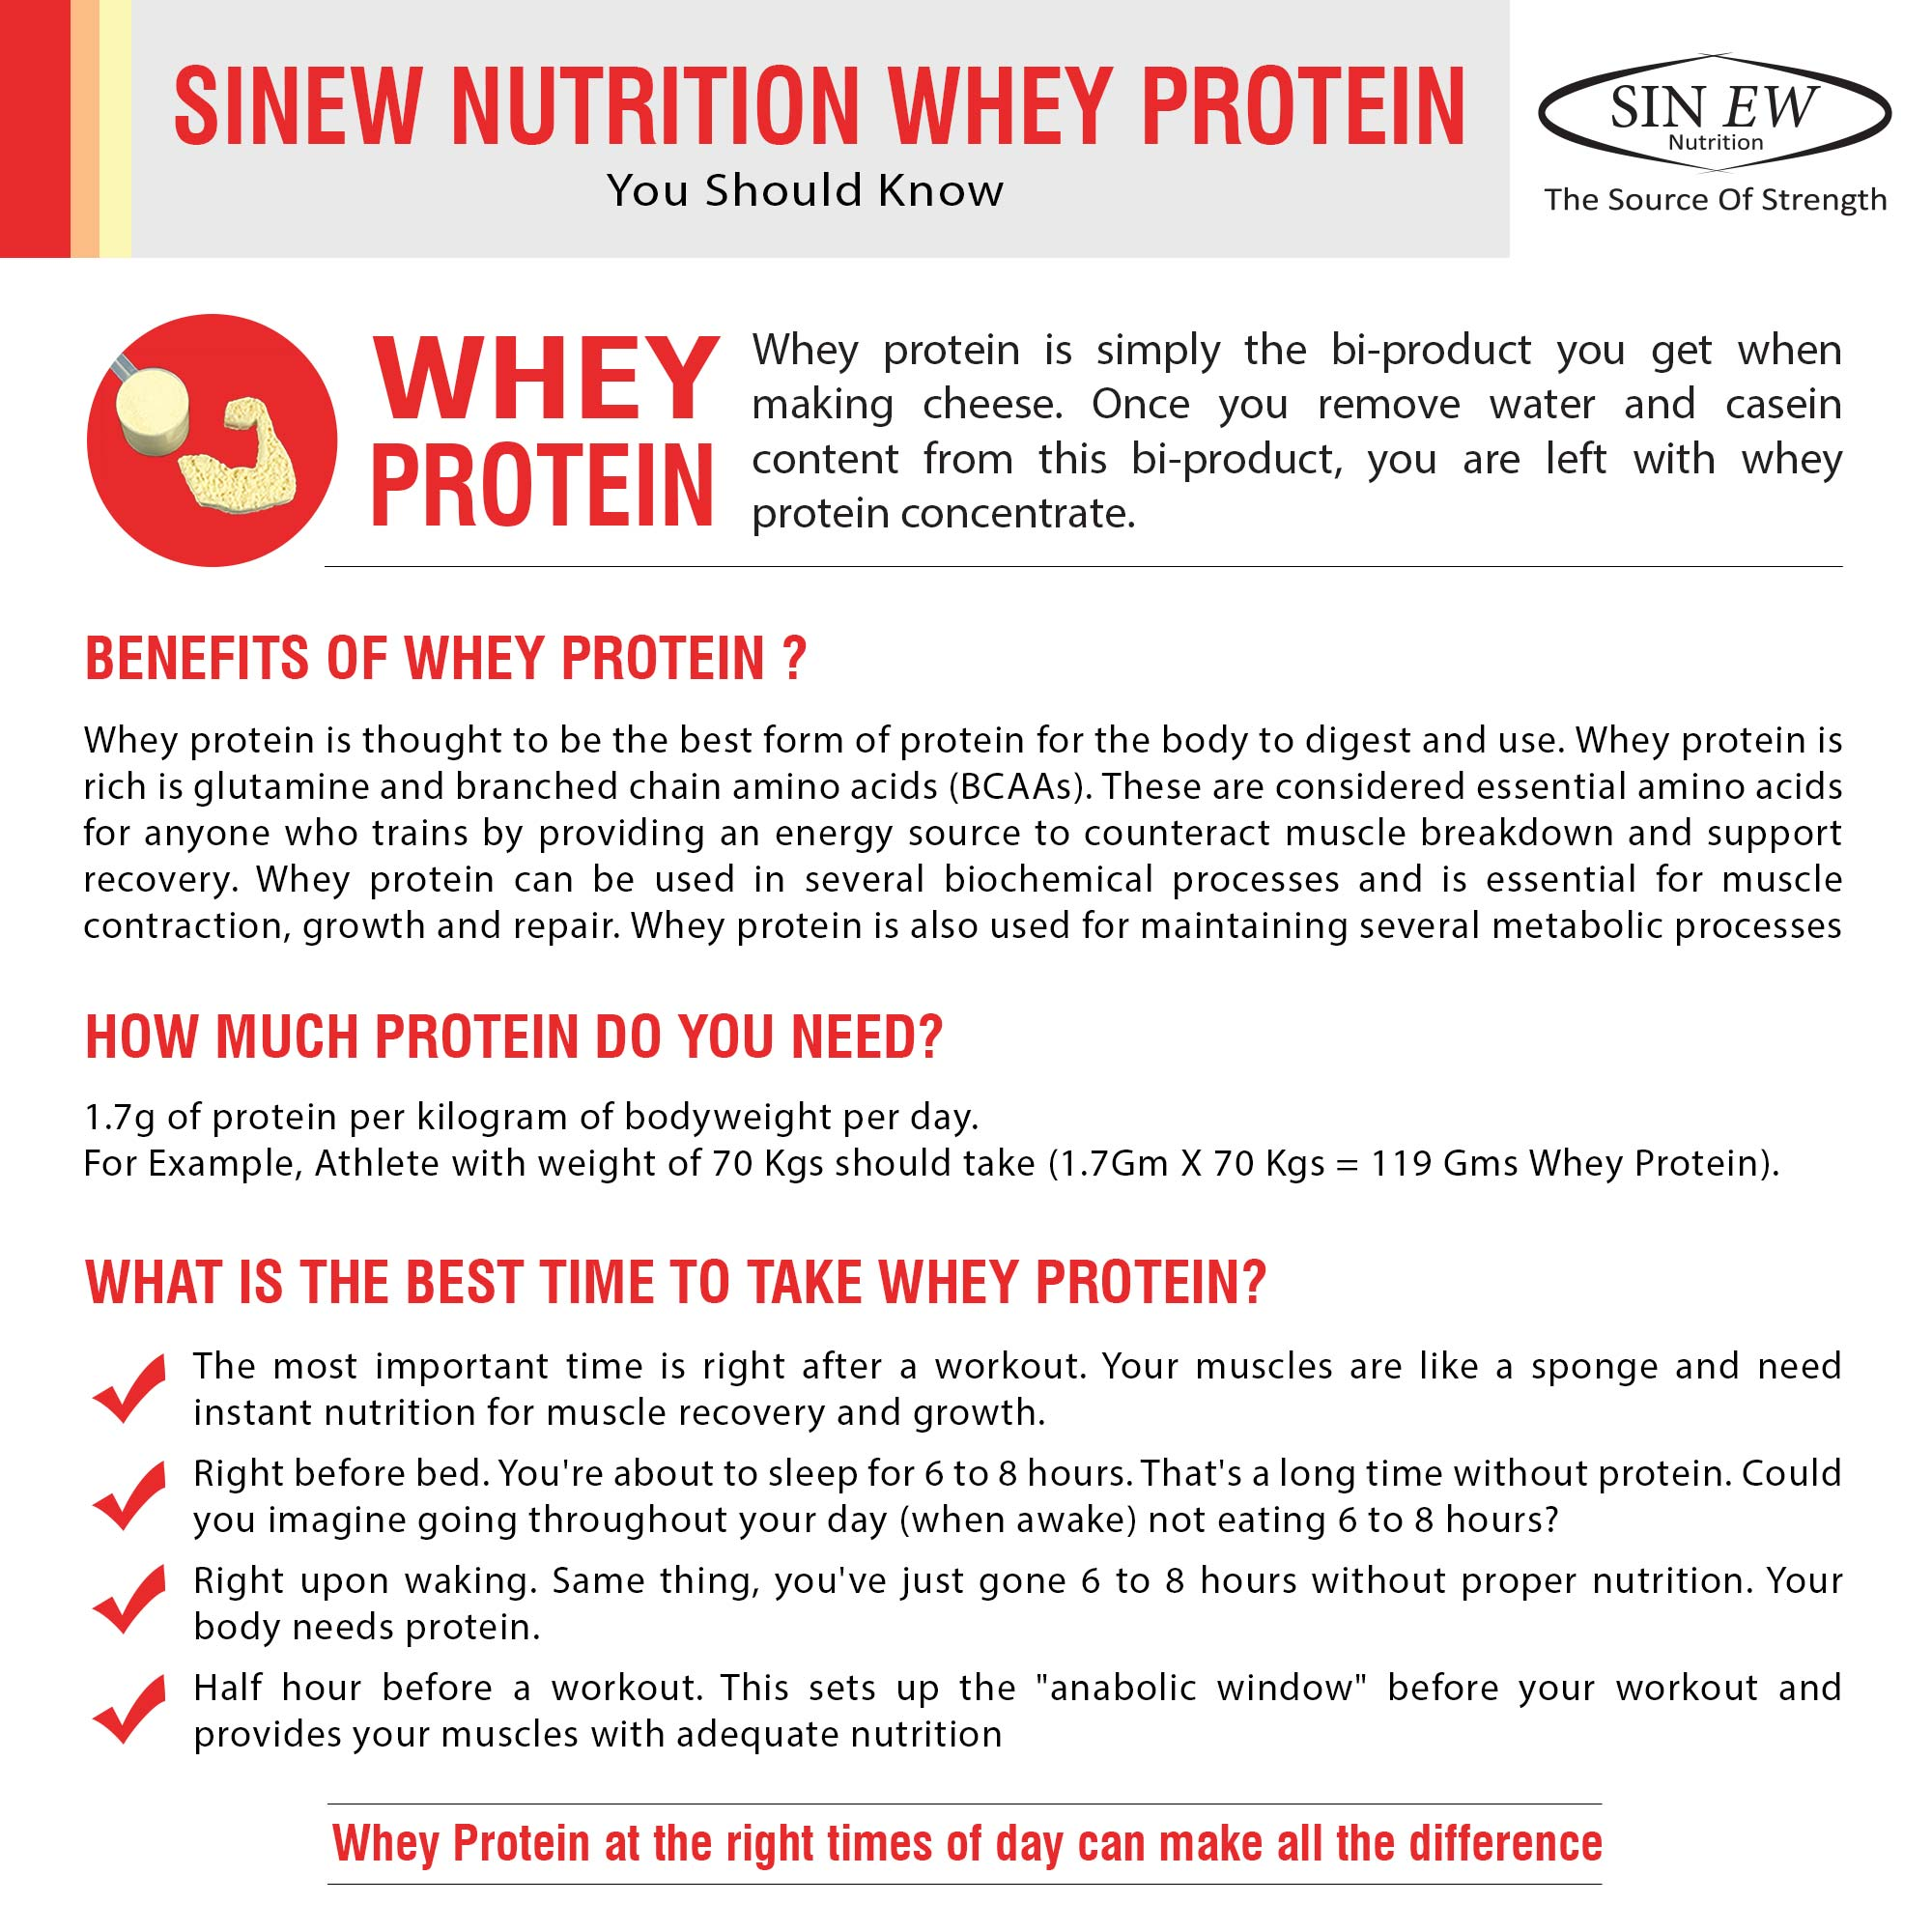 Whey Protein Image Red